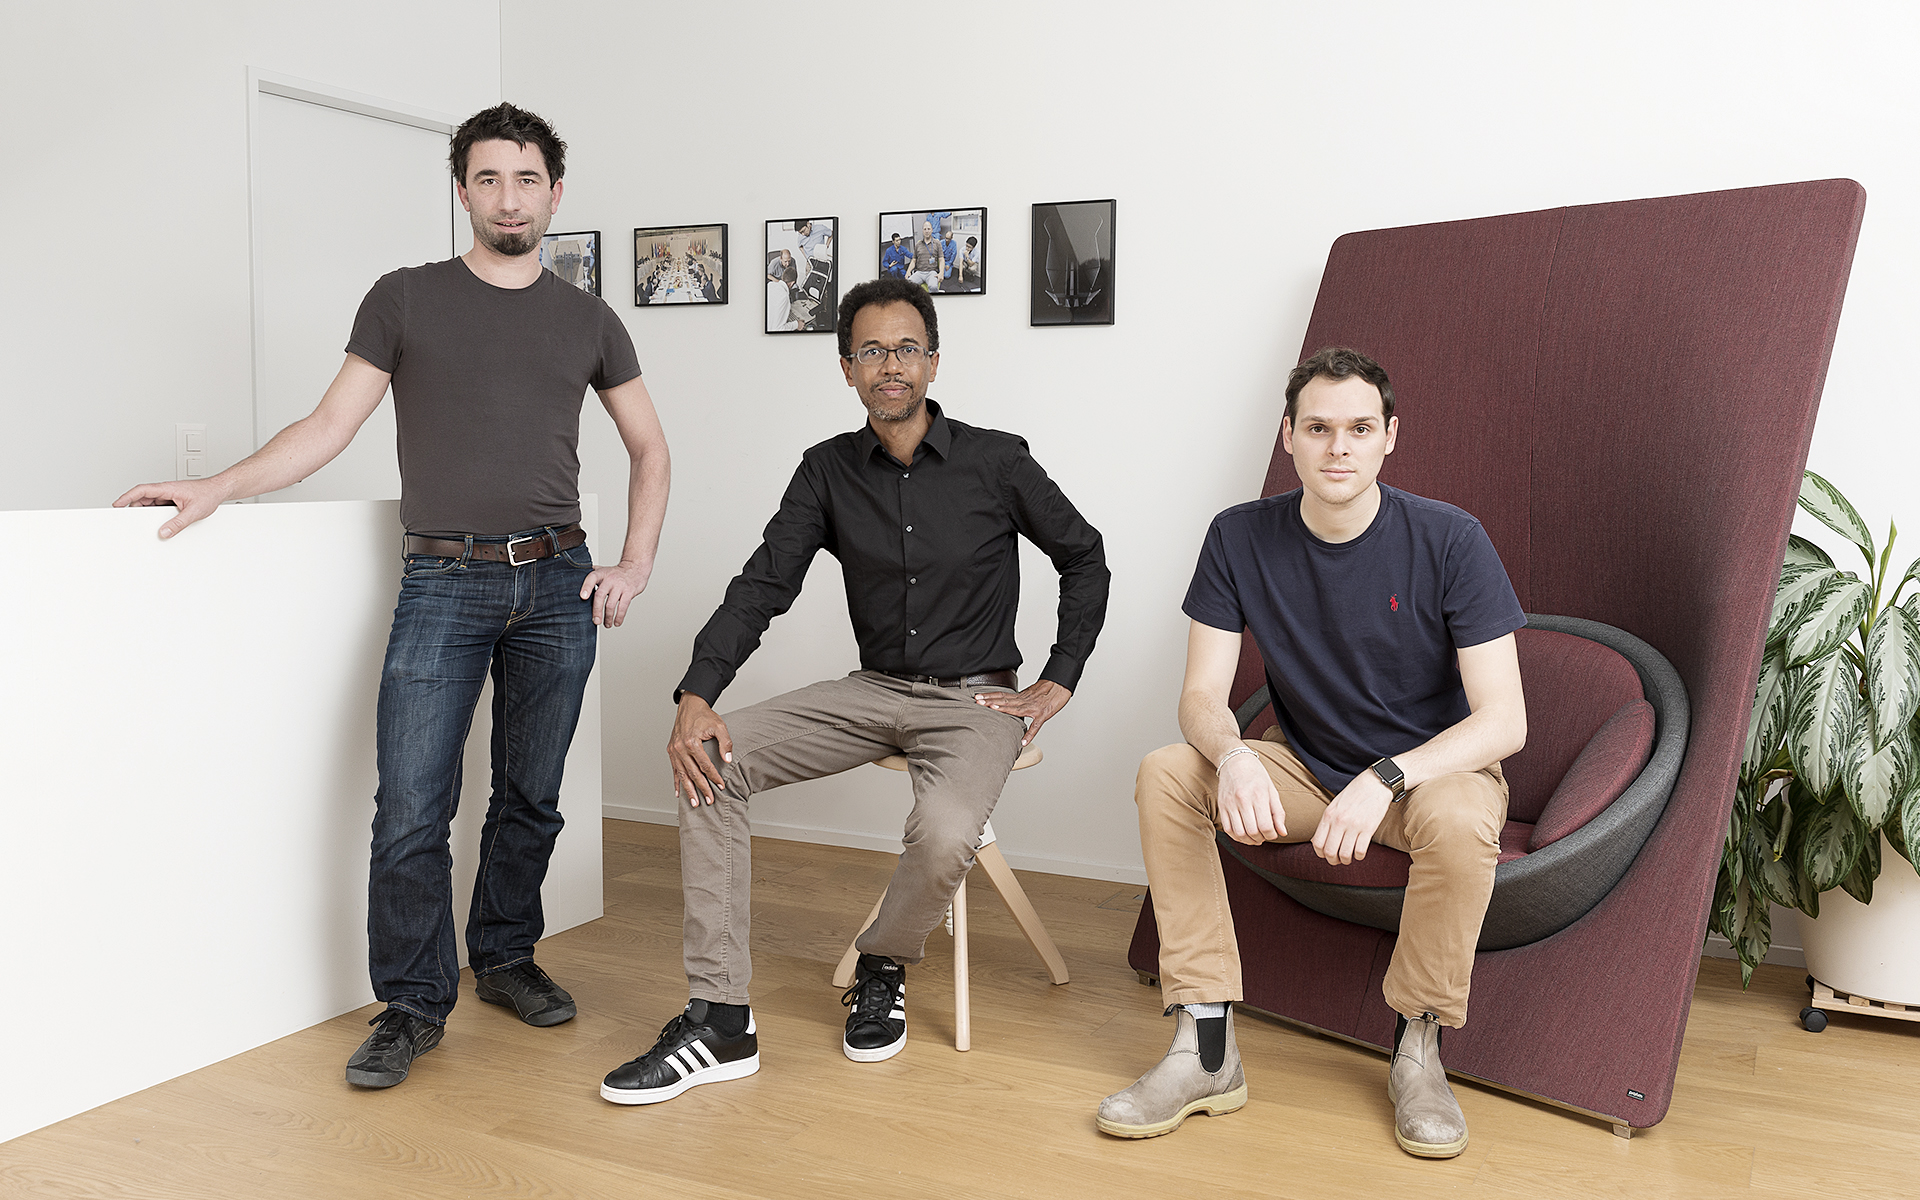 The Swiss ITO Design team in their office